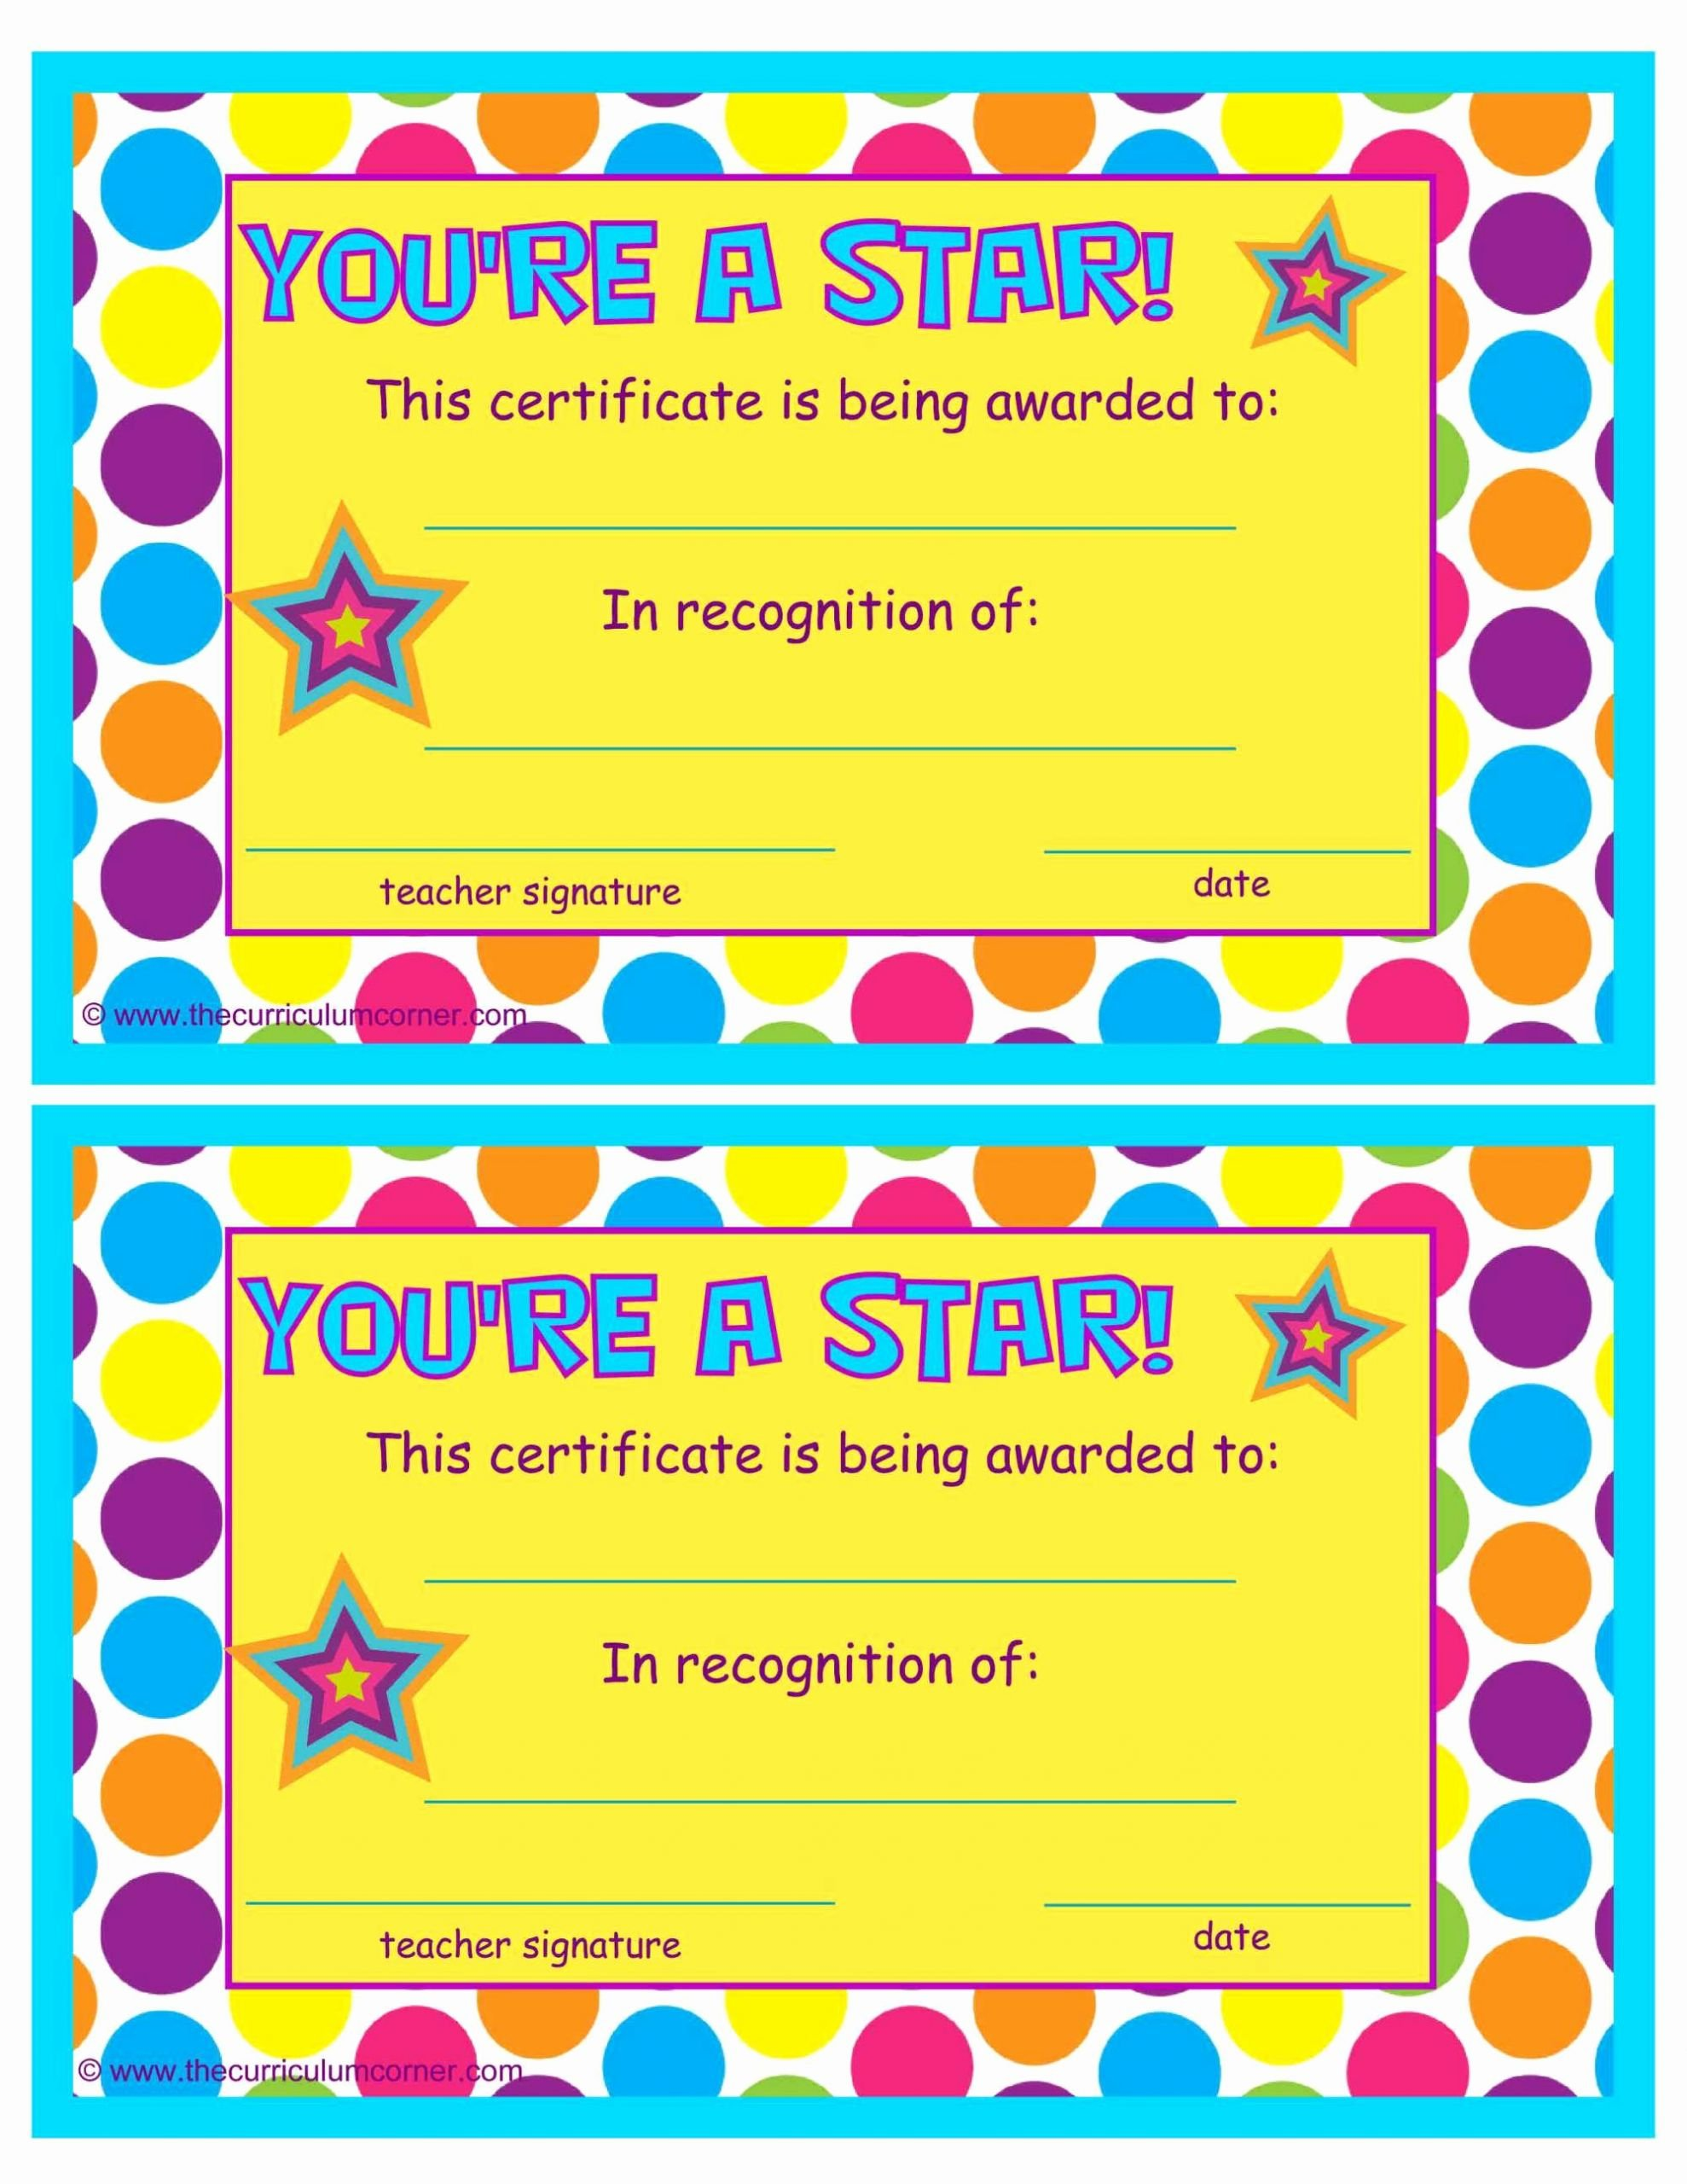 End Of Year Certificates for Students Templates Elegant You Re A Star End Of the Year Certificates